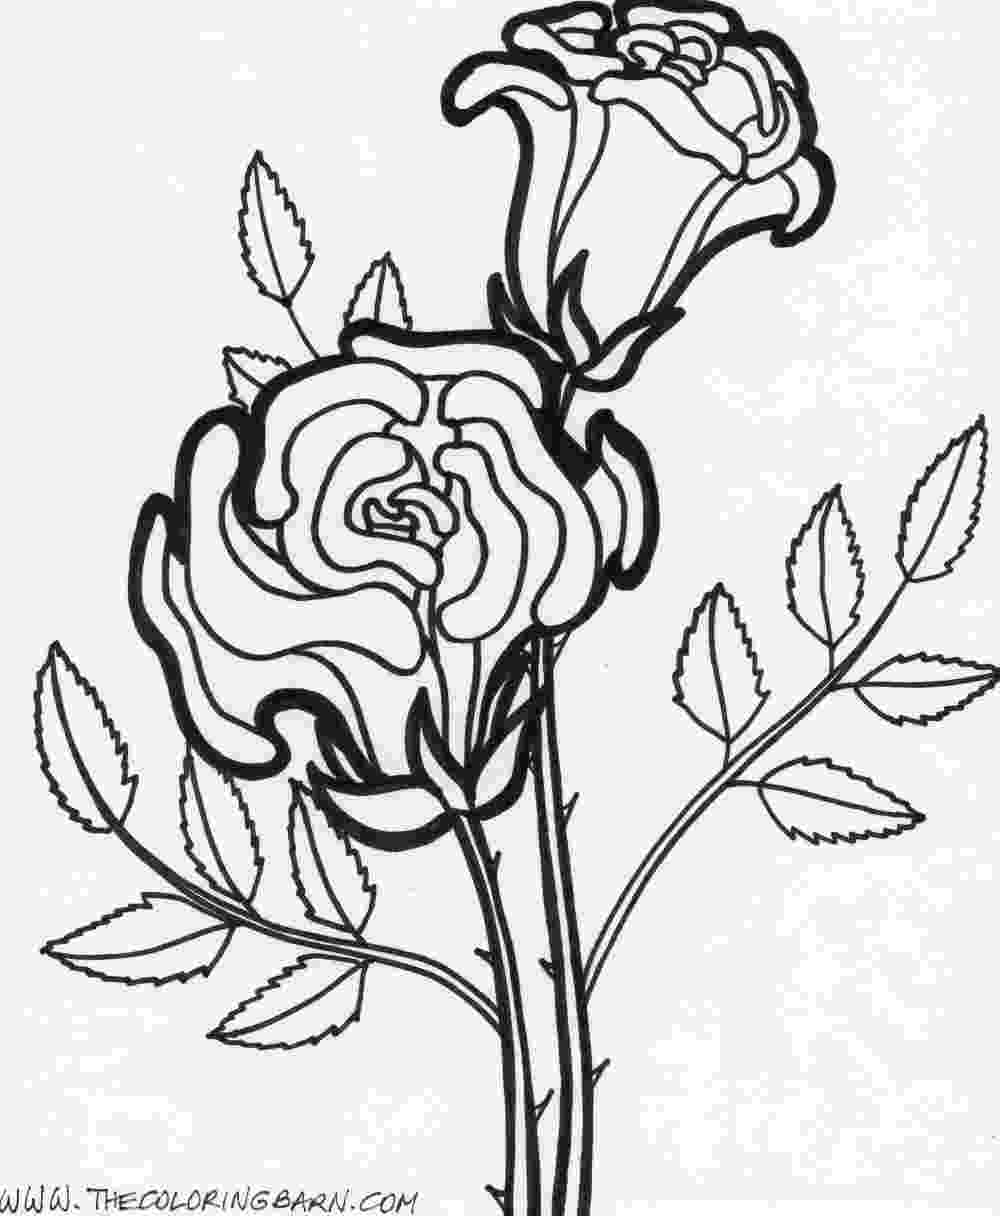 pictures of flowers coloring pages free printable flower coloring pages for kids cool2bkids pictures of pages coloring flowers